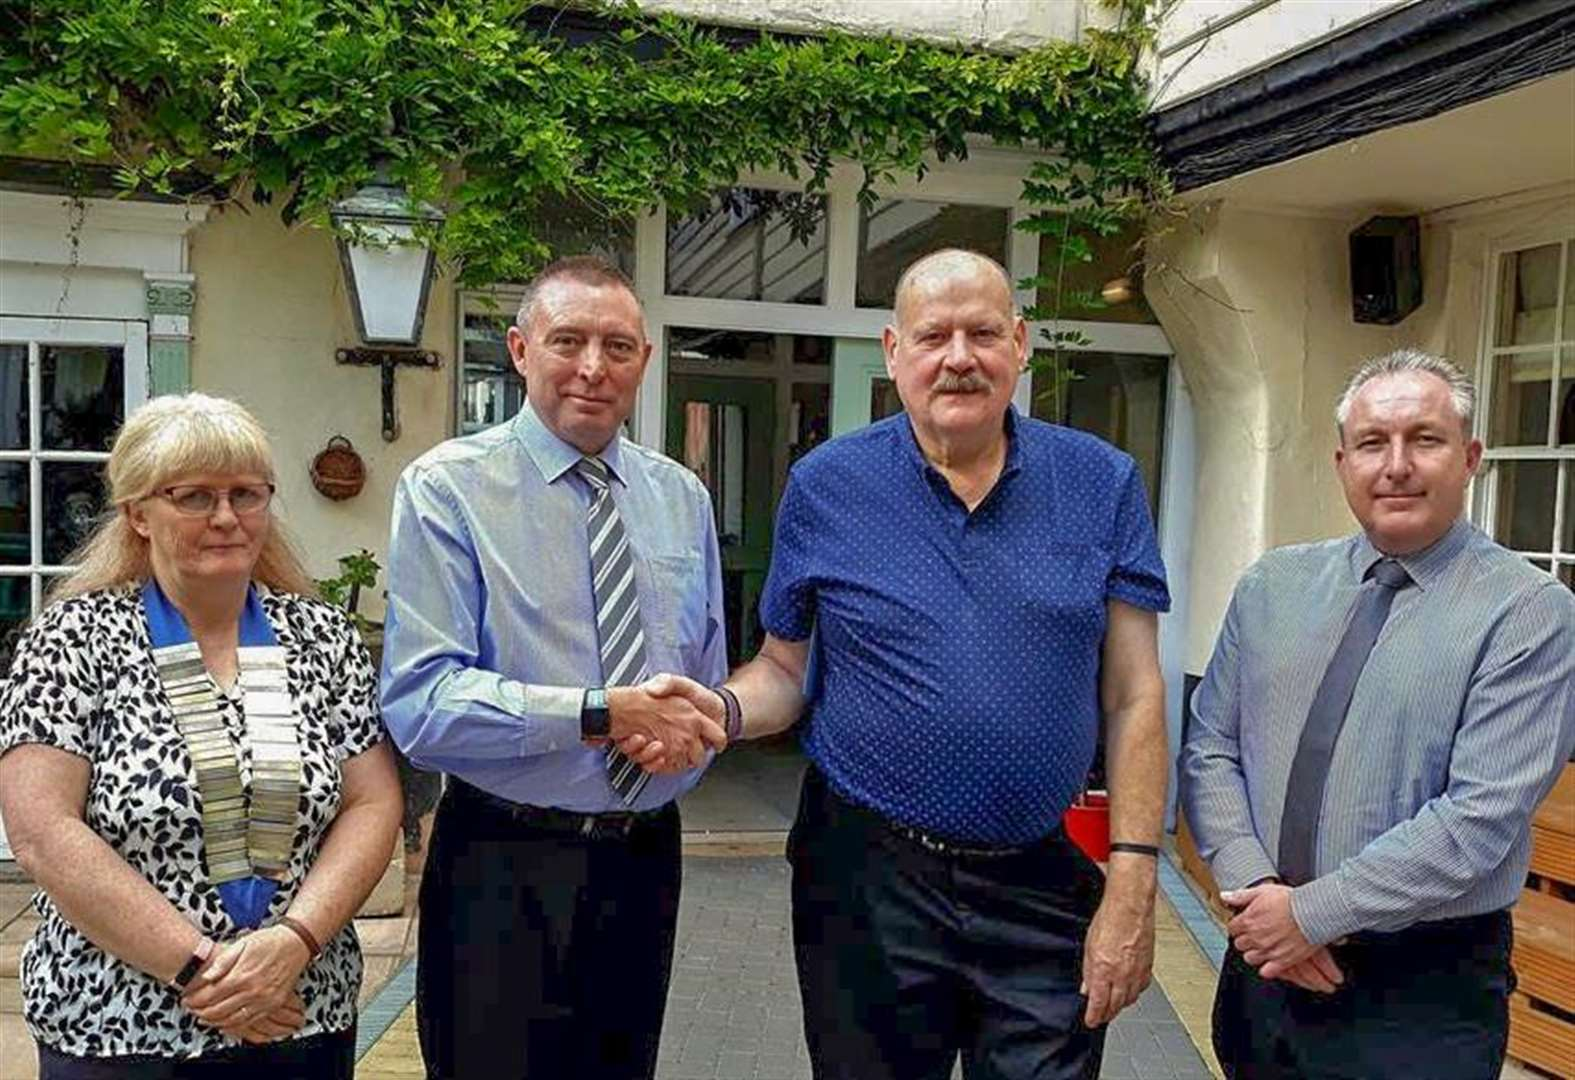 Farewell lunch to say goodbye to popular Wisbech security guard Roger Vanhinsbergh